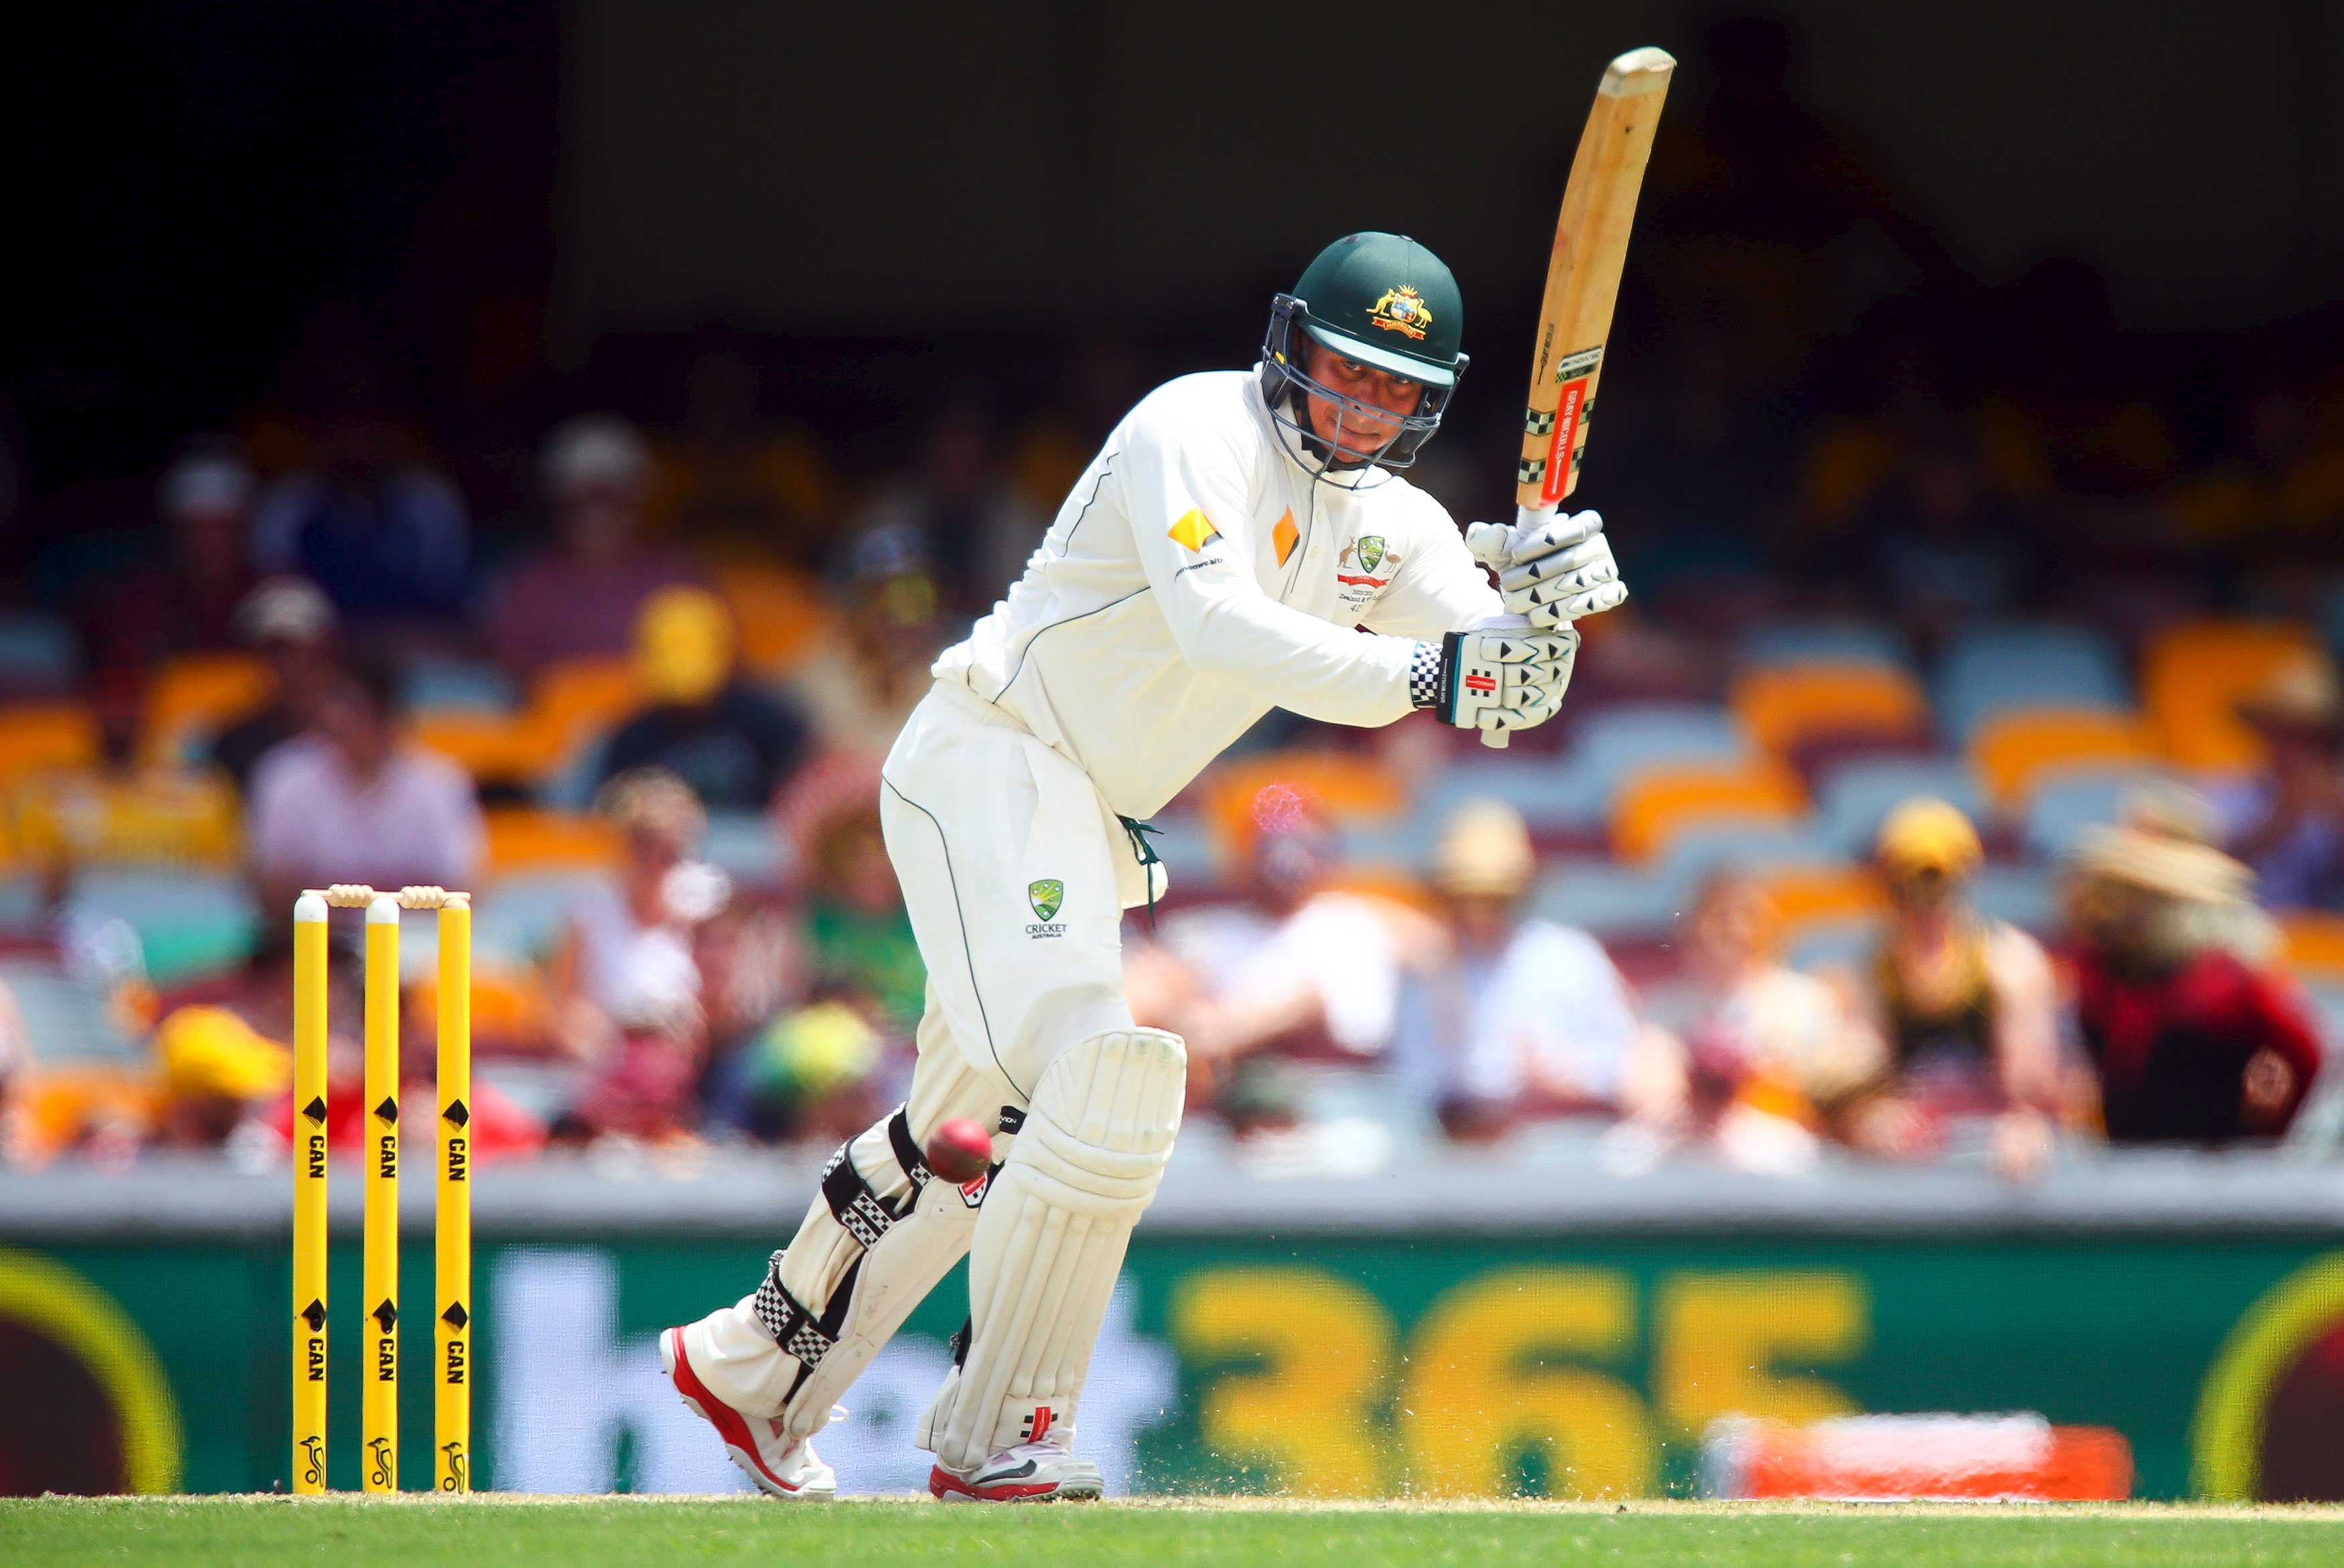 Australian batsman Usman Khawaja drives a wide delivery during the first cricket test match between Australia and New Zealand in Brisbane November 6, 2015. Photo: Reuters